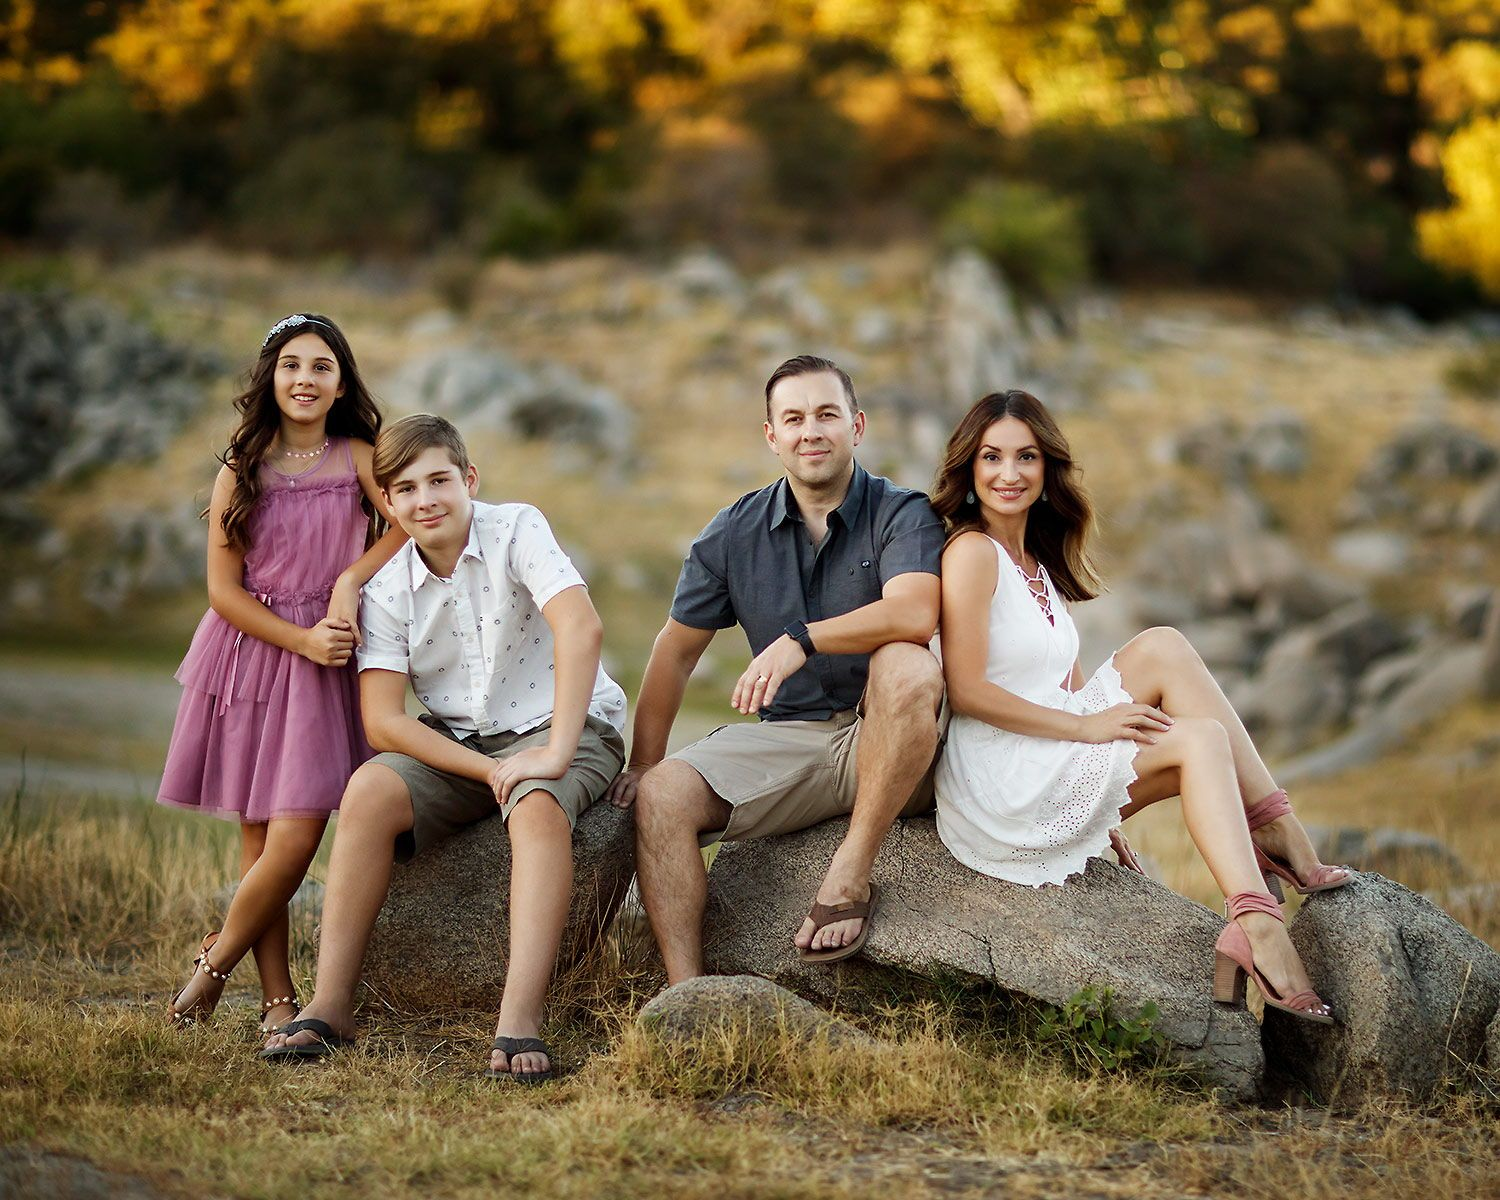 Outdoor Family Of Four Photography Ideas Family Outfits And Posing Tips In 2020 Family Photography Outfits Fall Family Photo Outfits Photography Poses Family